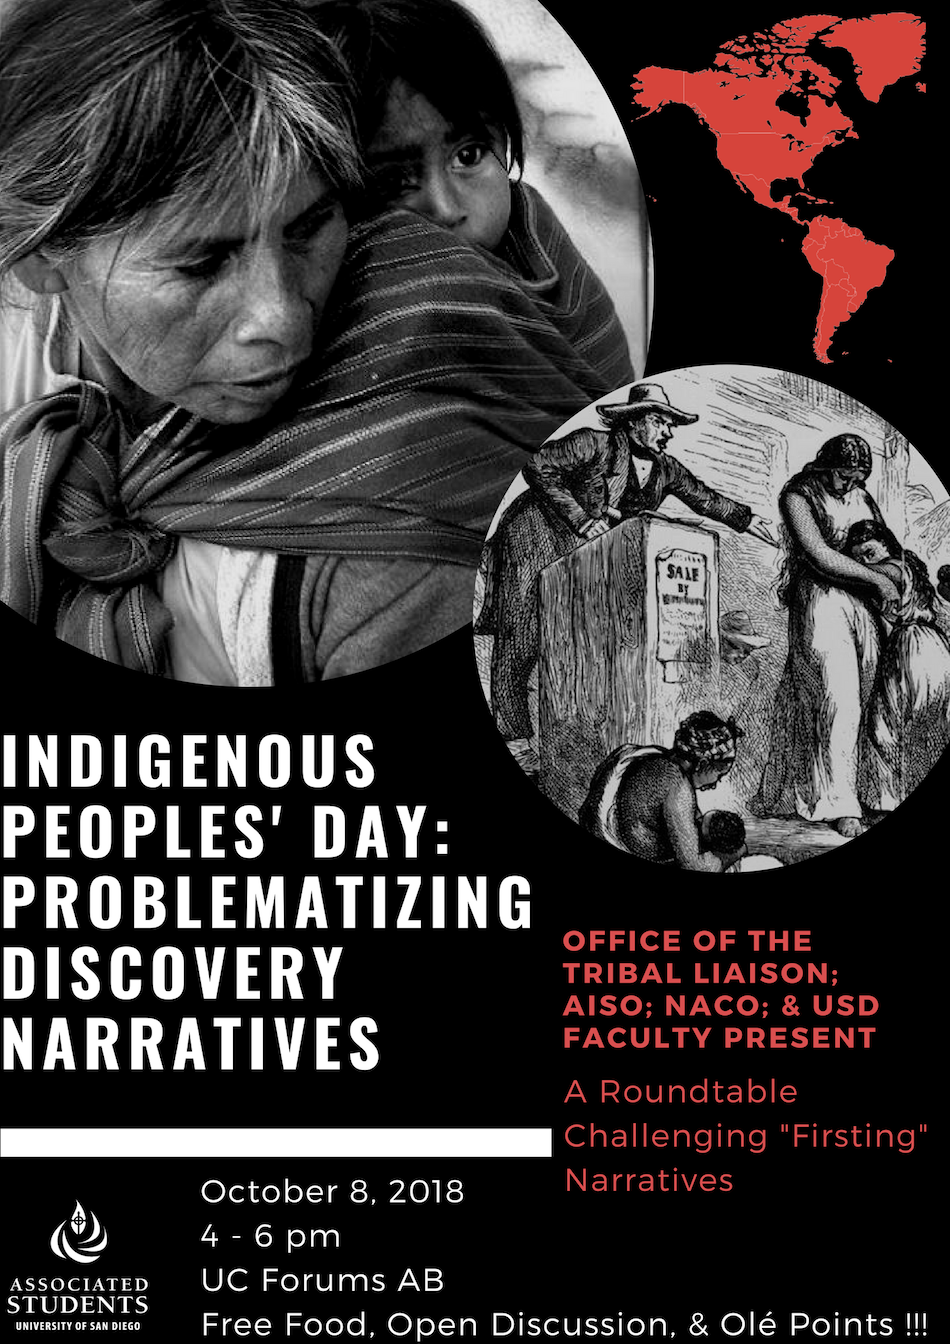 Indigenous Peoples' Day: Problematizing Discovery Narratives